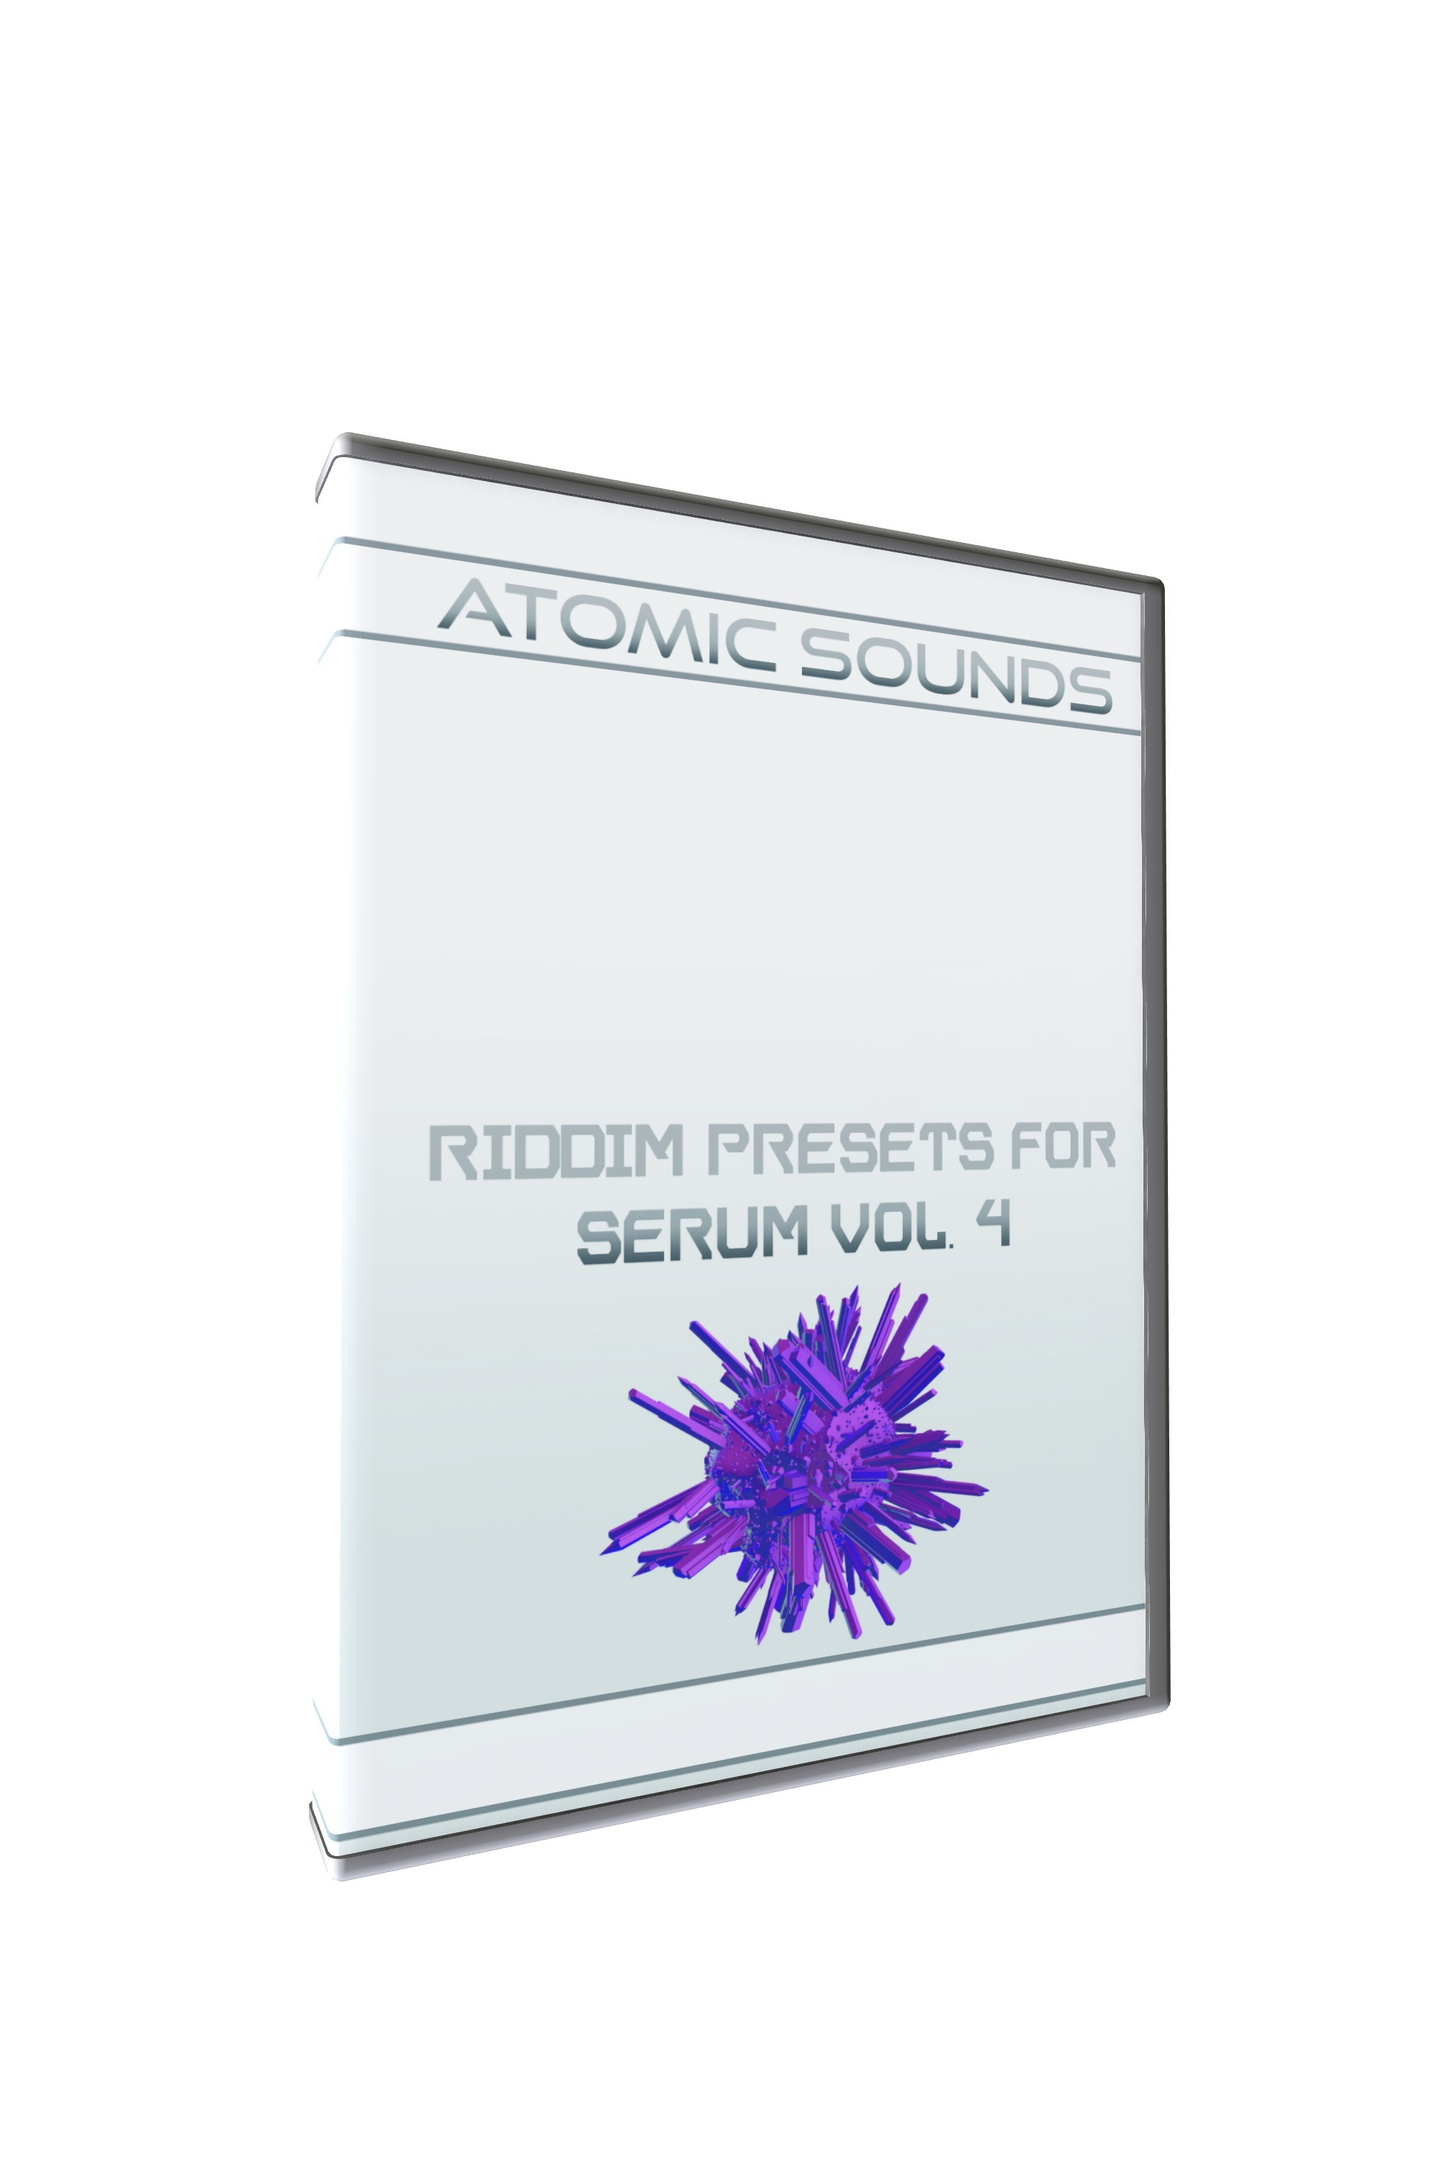 Atomic Sounds - Riddim Presets For Serum Vol. 4